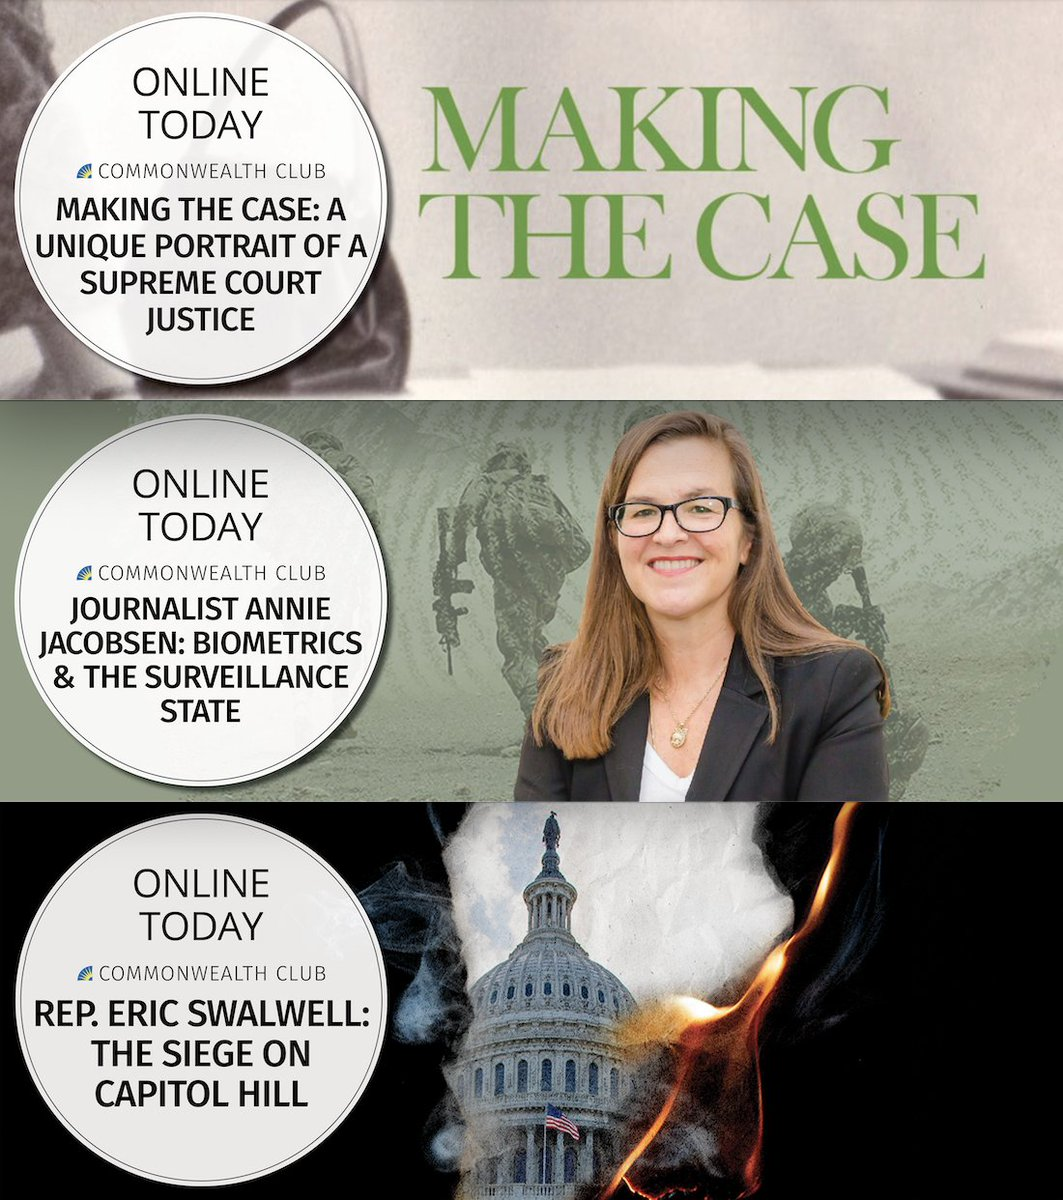 Online today • NOON PST / Making the Case: Unique Portrait of a Supreme Court Justice • 3 P.M. PST / Journalist @AnnieJacobsen: Biometrics & the Surveillance State • 6 P.M. PST / @RepSwalwell: The Siege on #CapitolHill  Register for these online events: